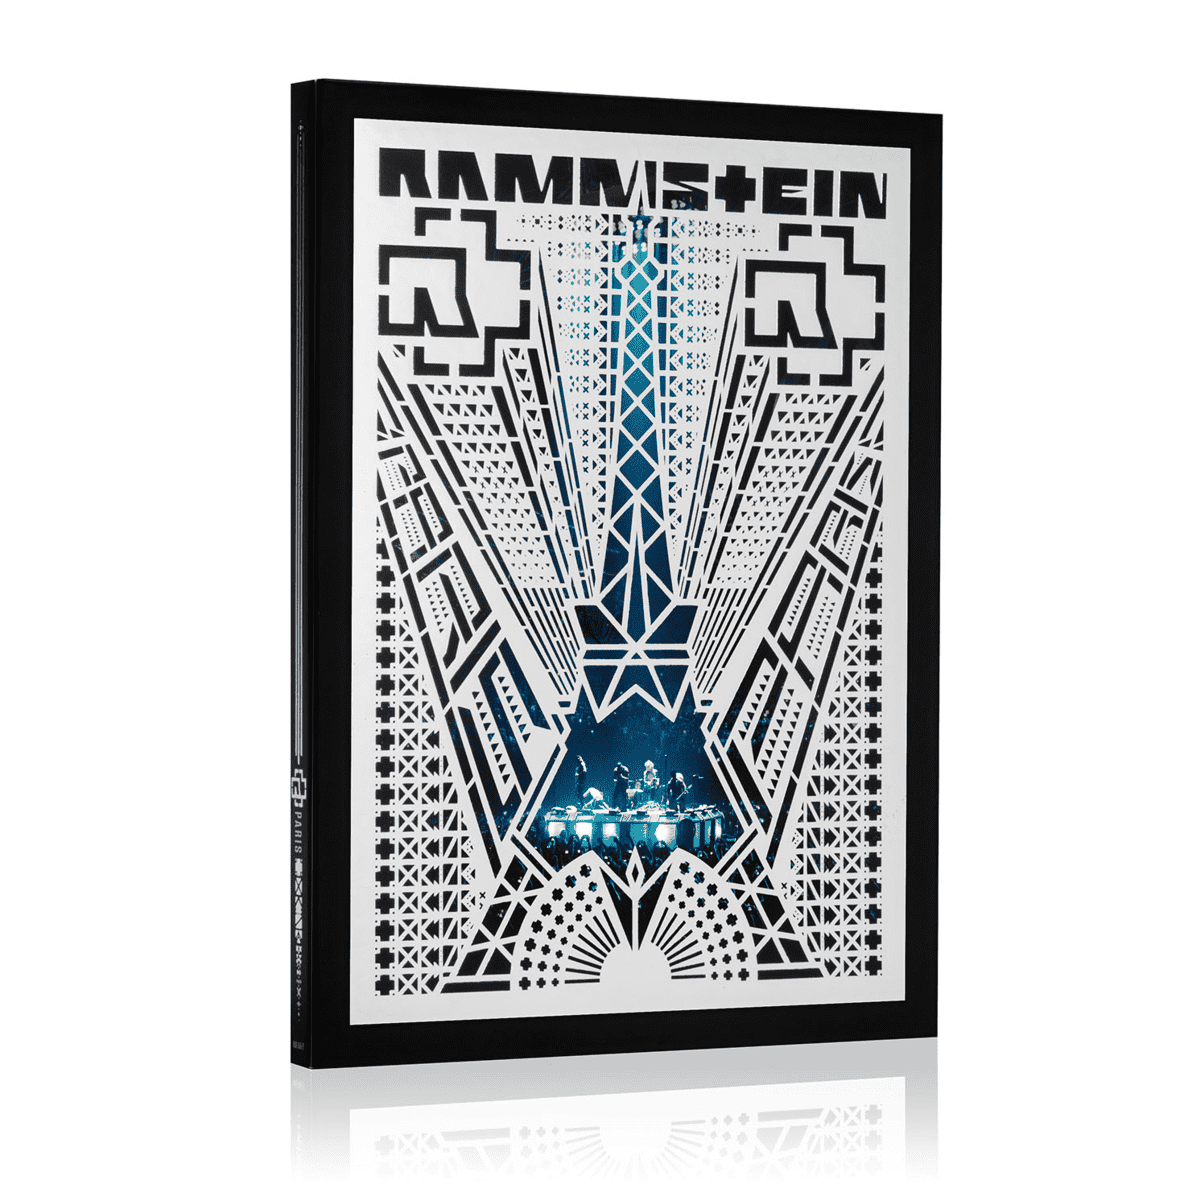 Rammstein: Paris (Special Edt.) Rammstein auf CD + Blu-ray Disc